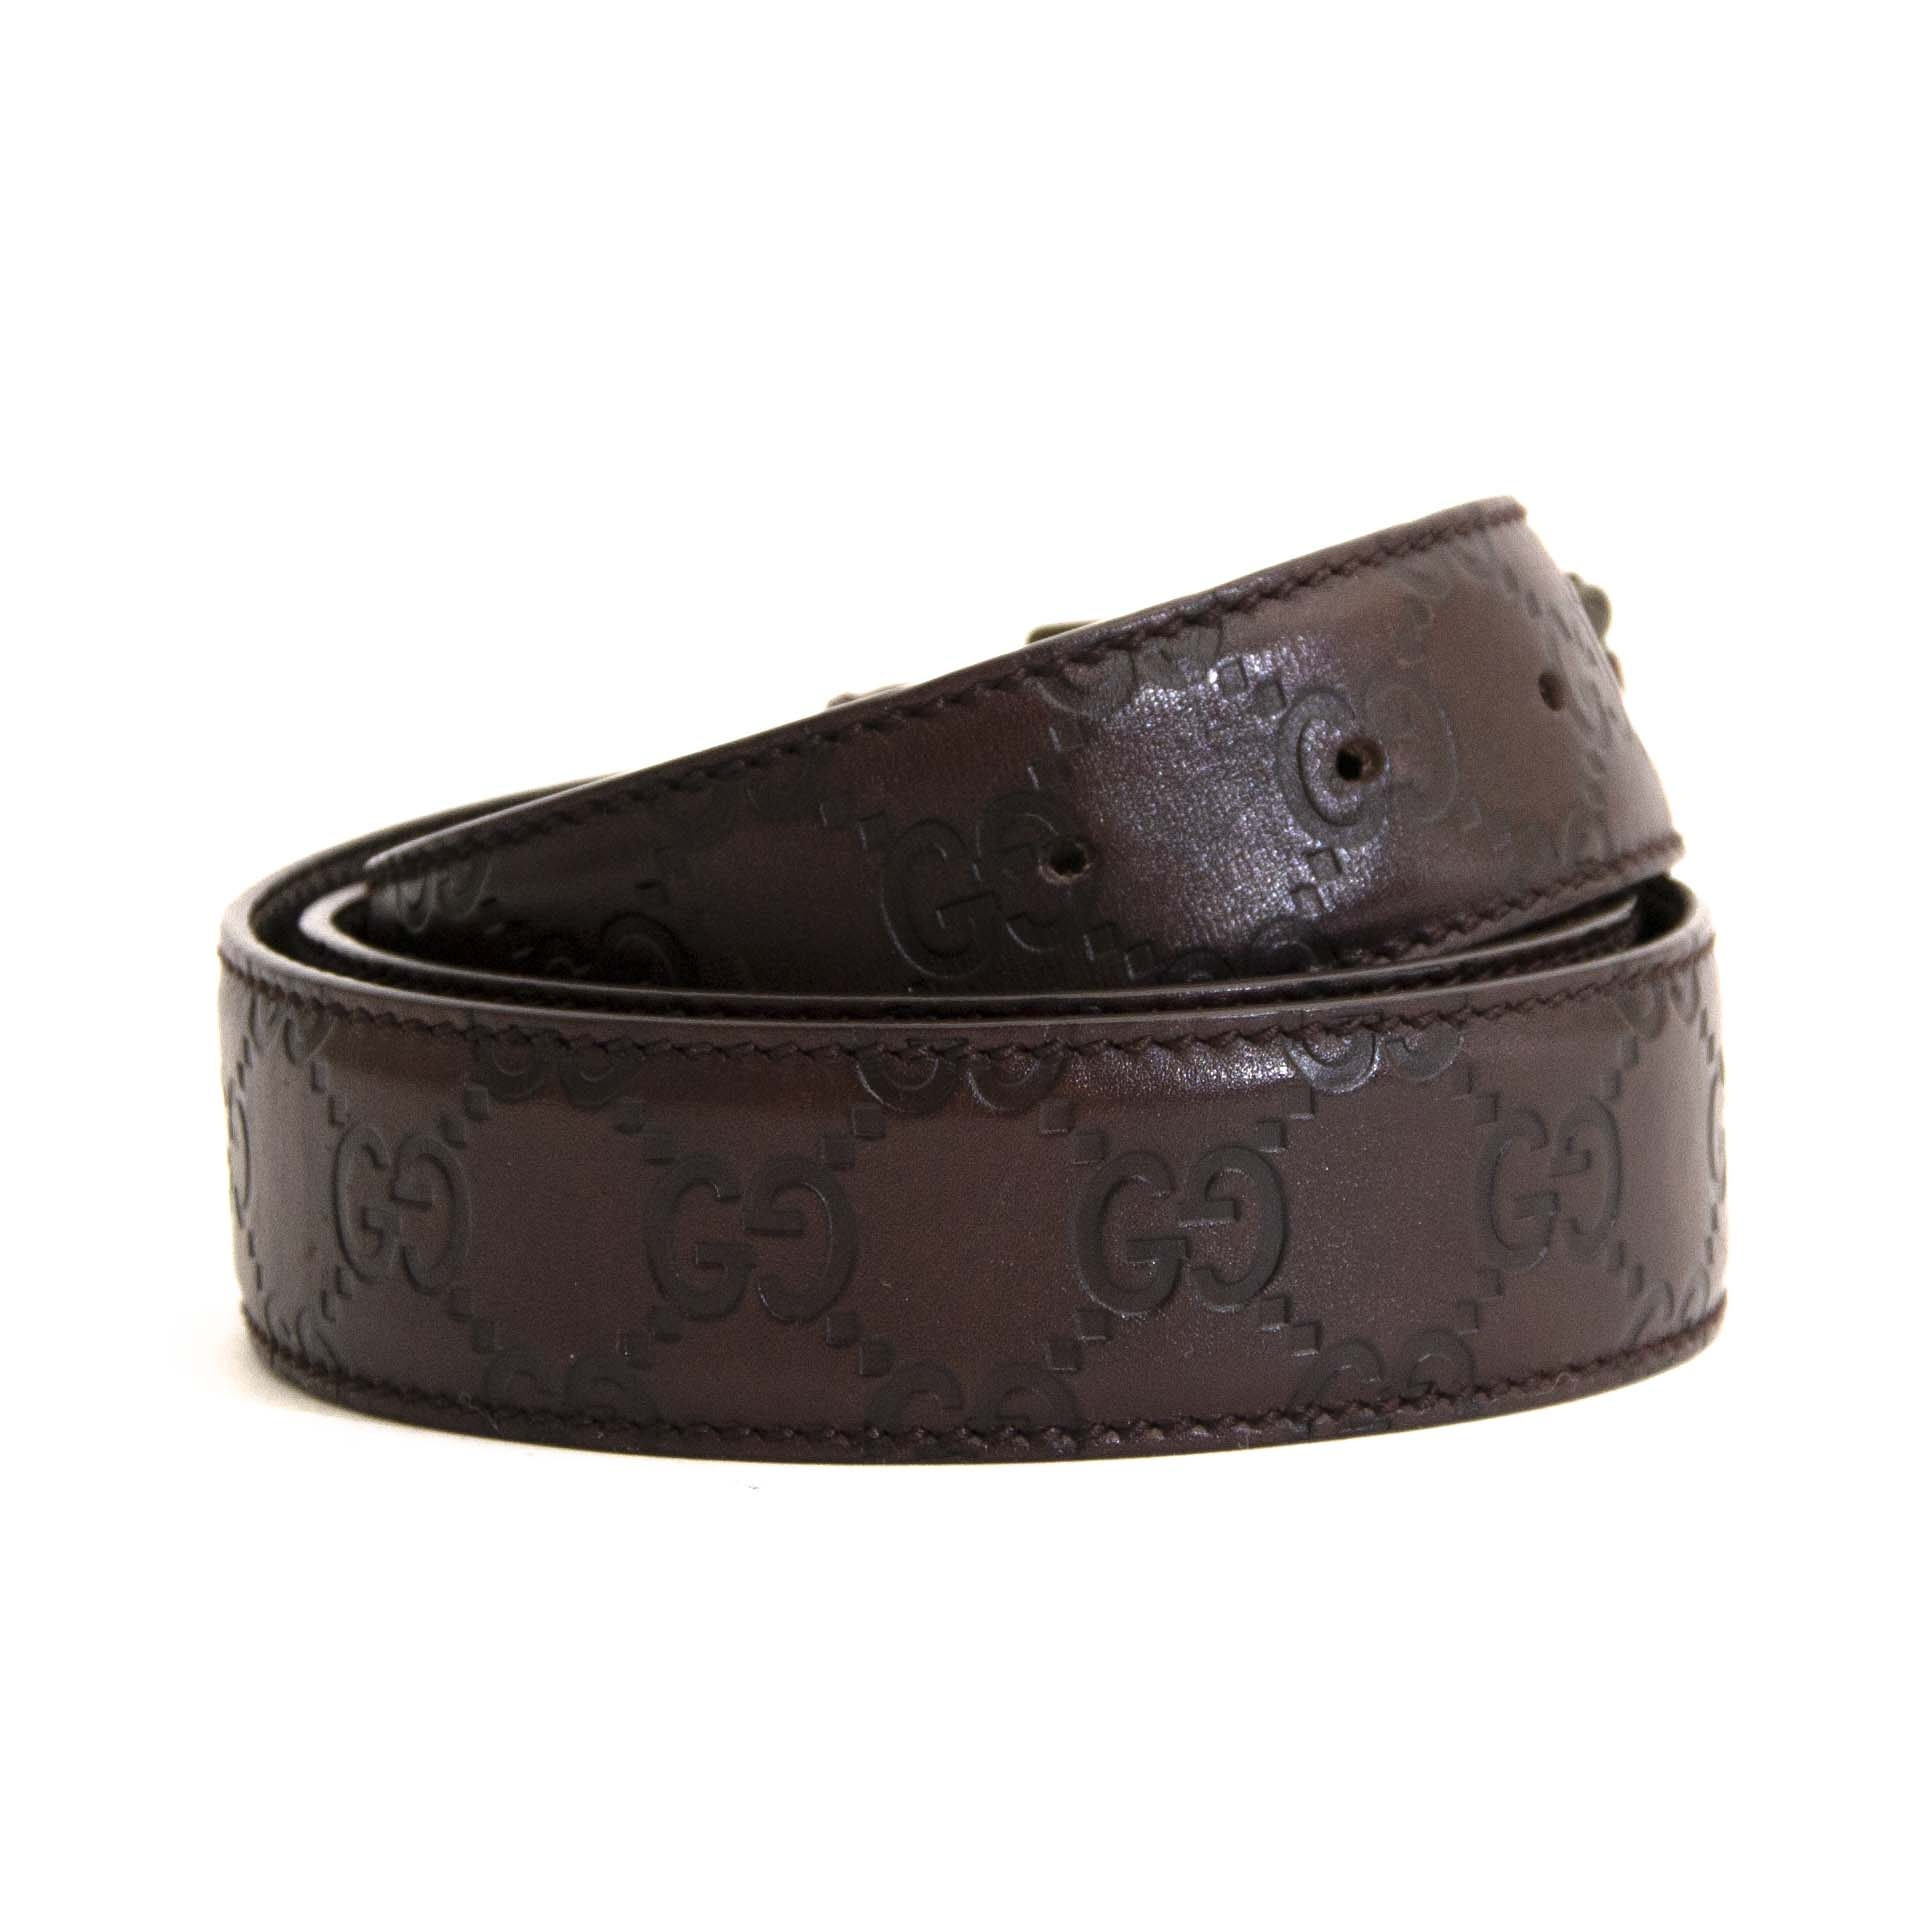 looking for a Gucci Dark Brown Leather Logo Belt - Size 95? Buy it at labellov.com for the best price